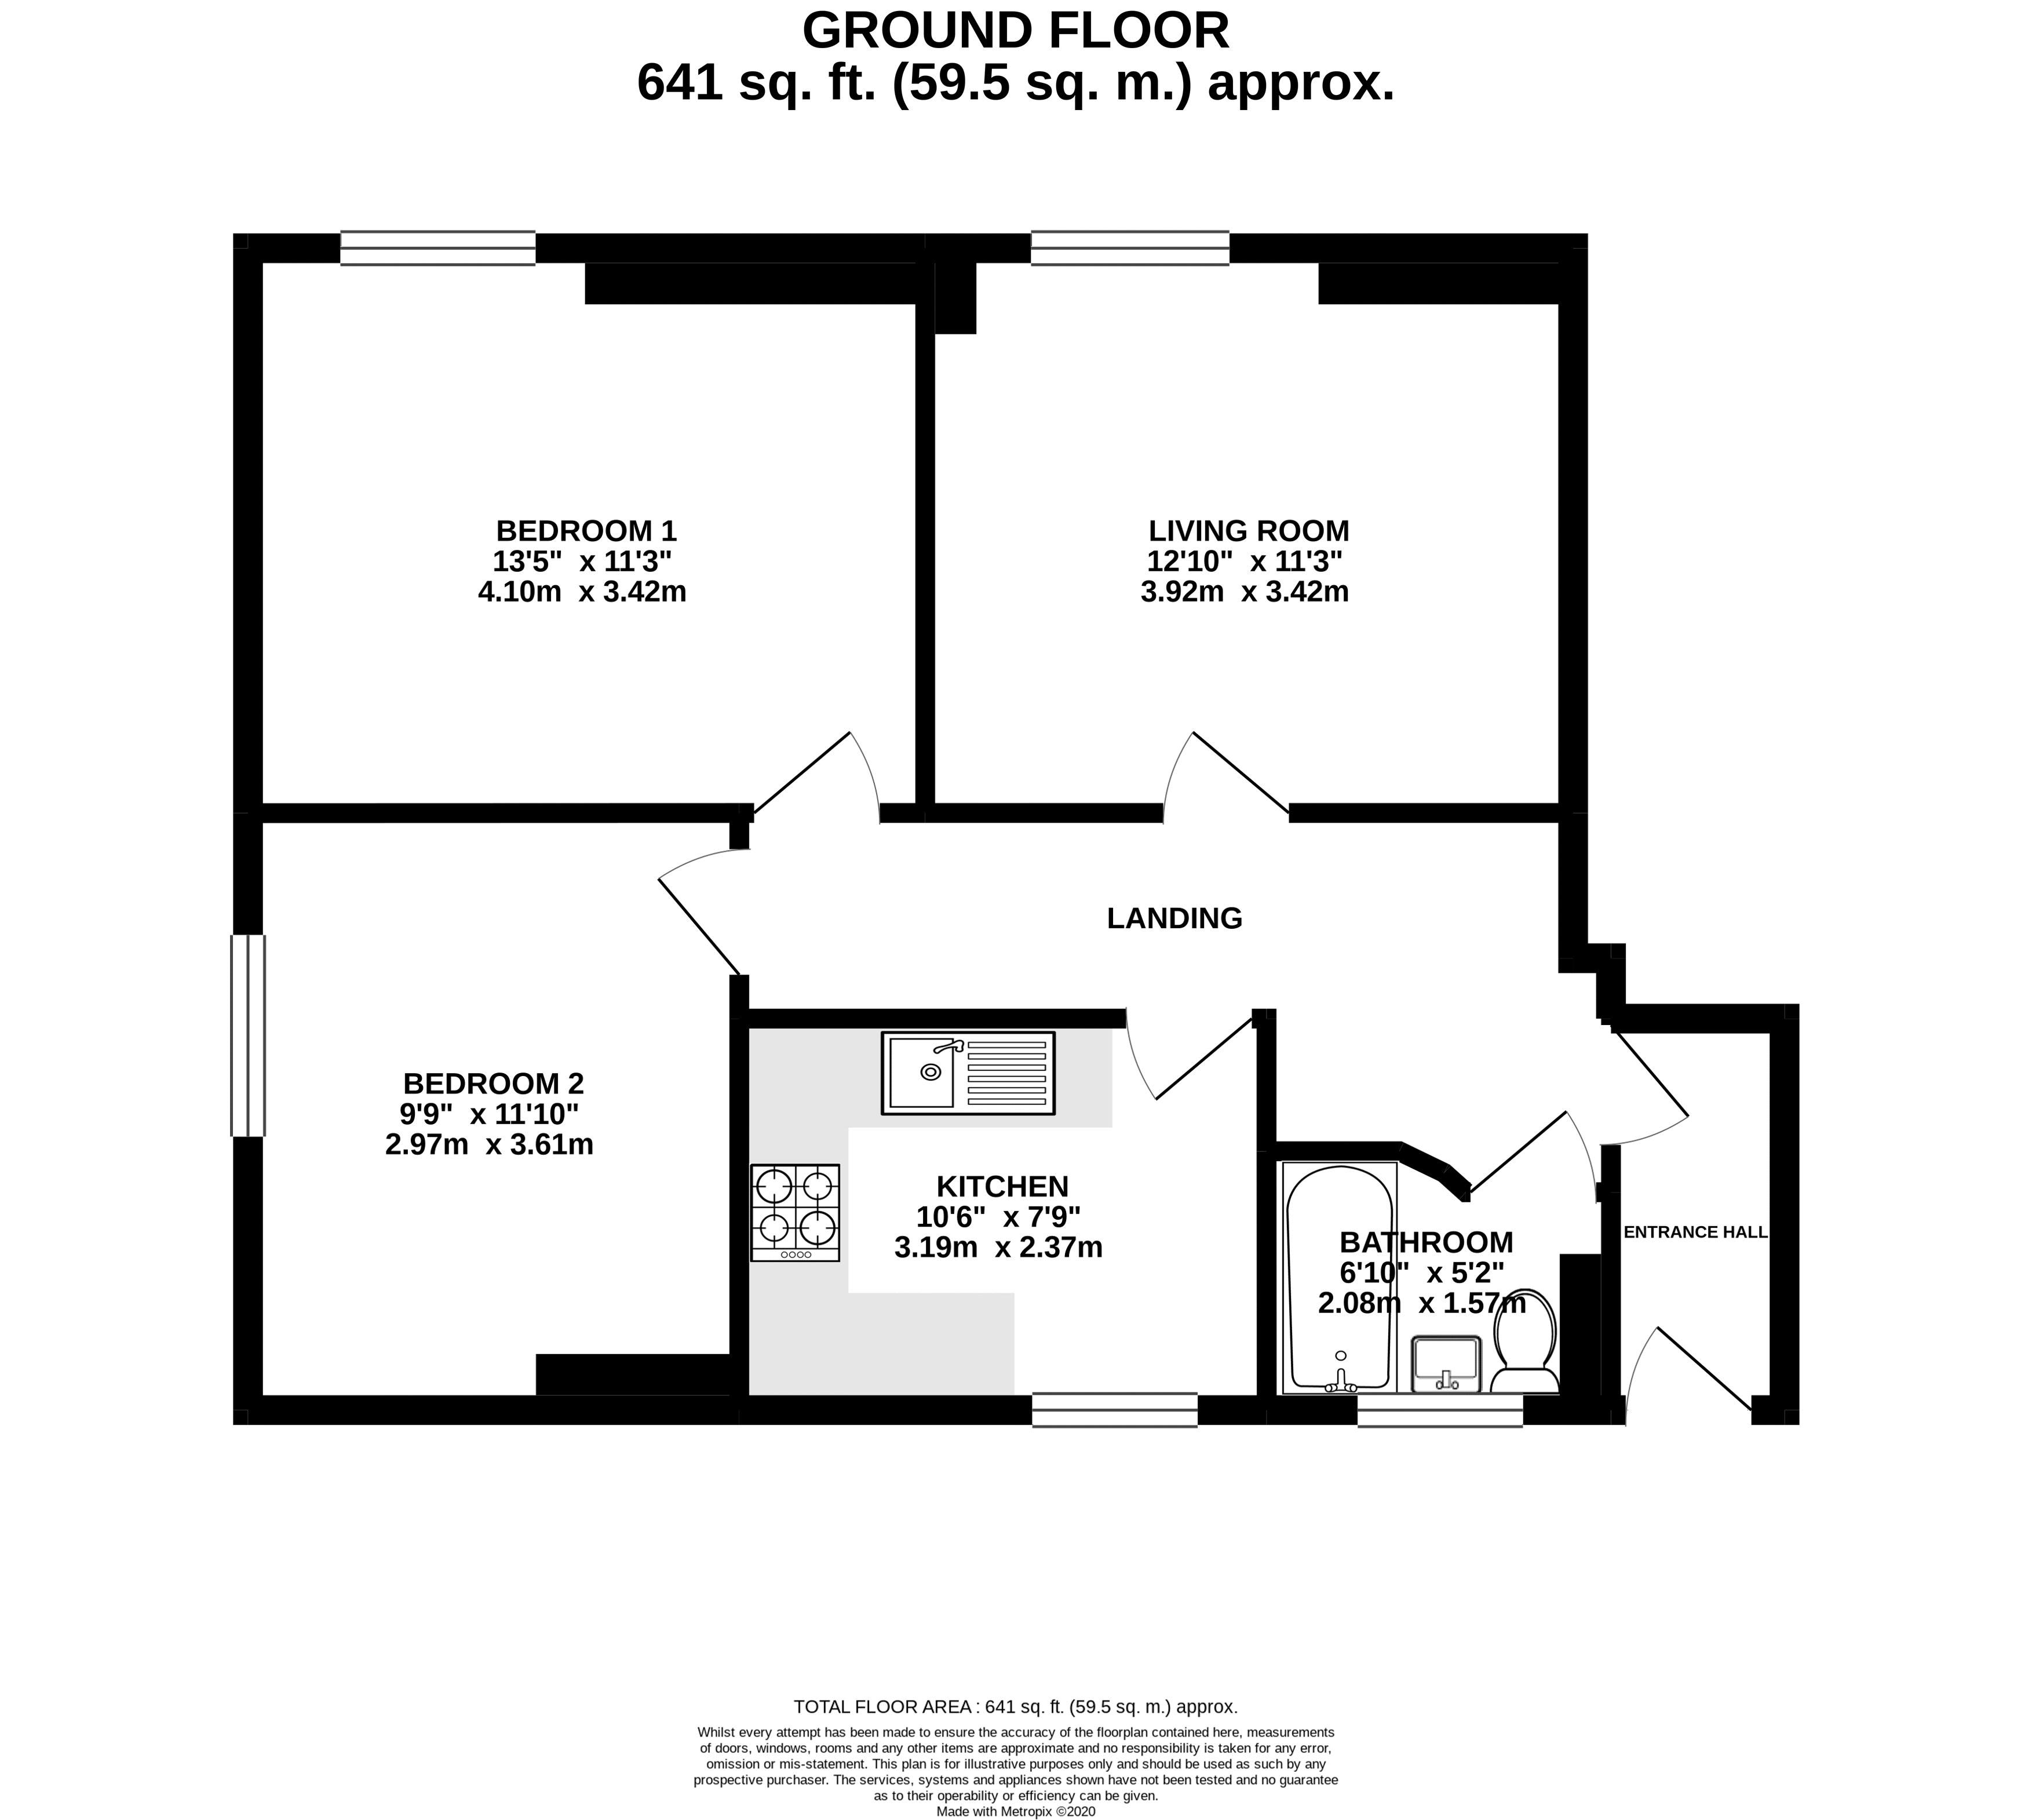 Floor plans for New Steine Mansions, Devonshire Place, Brighton property for sale in Kemptown, Brighton by Coapt